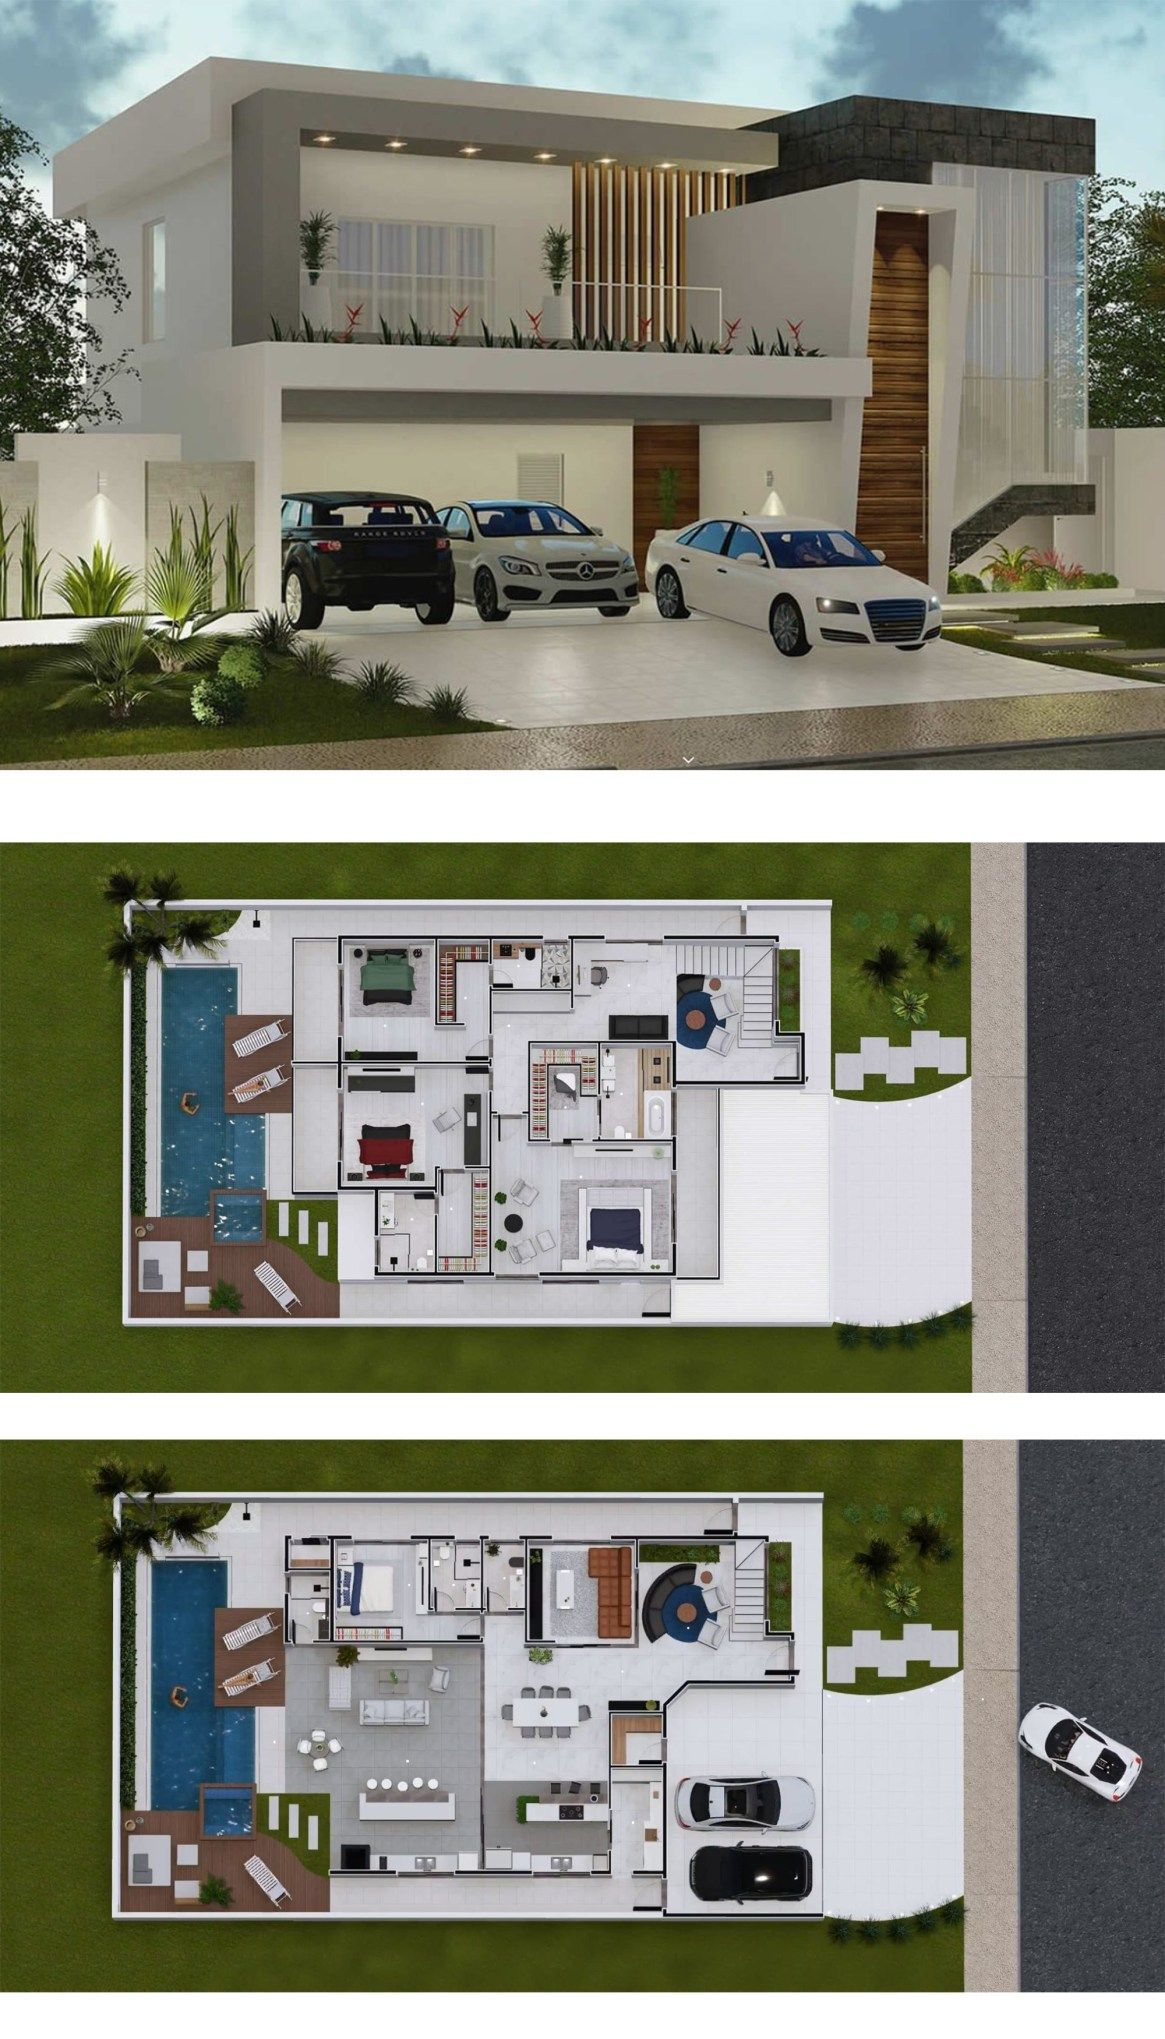 4 Bedrooms Home Design 15x30m Home Design With Plansearch Duplex House Design Architectural House Plans Modern House Exterior